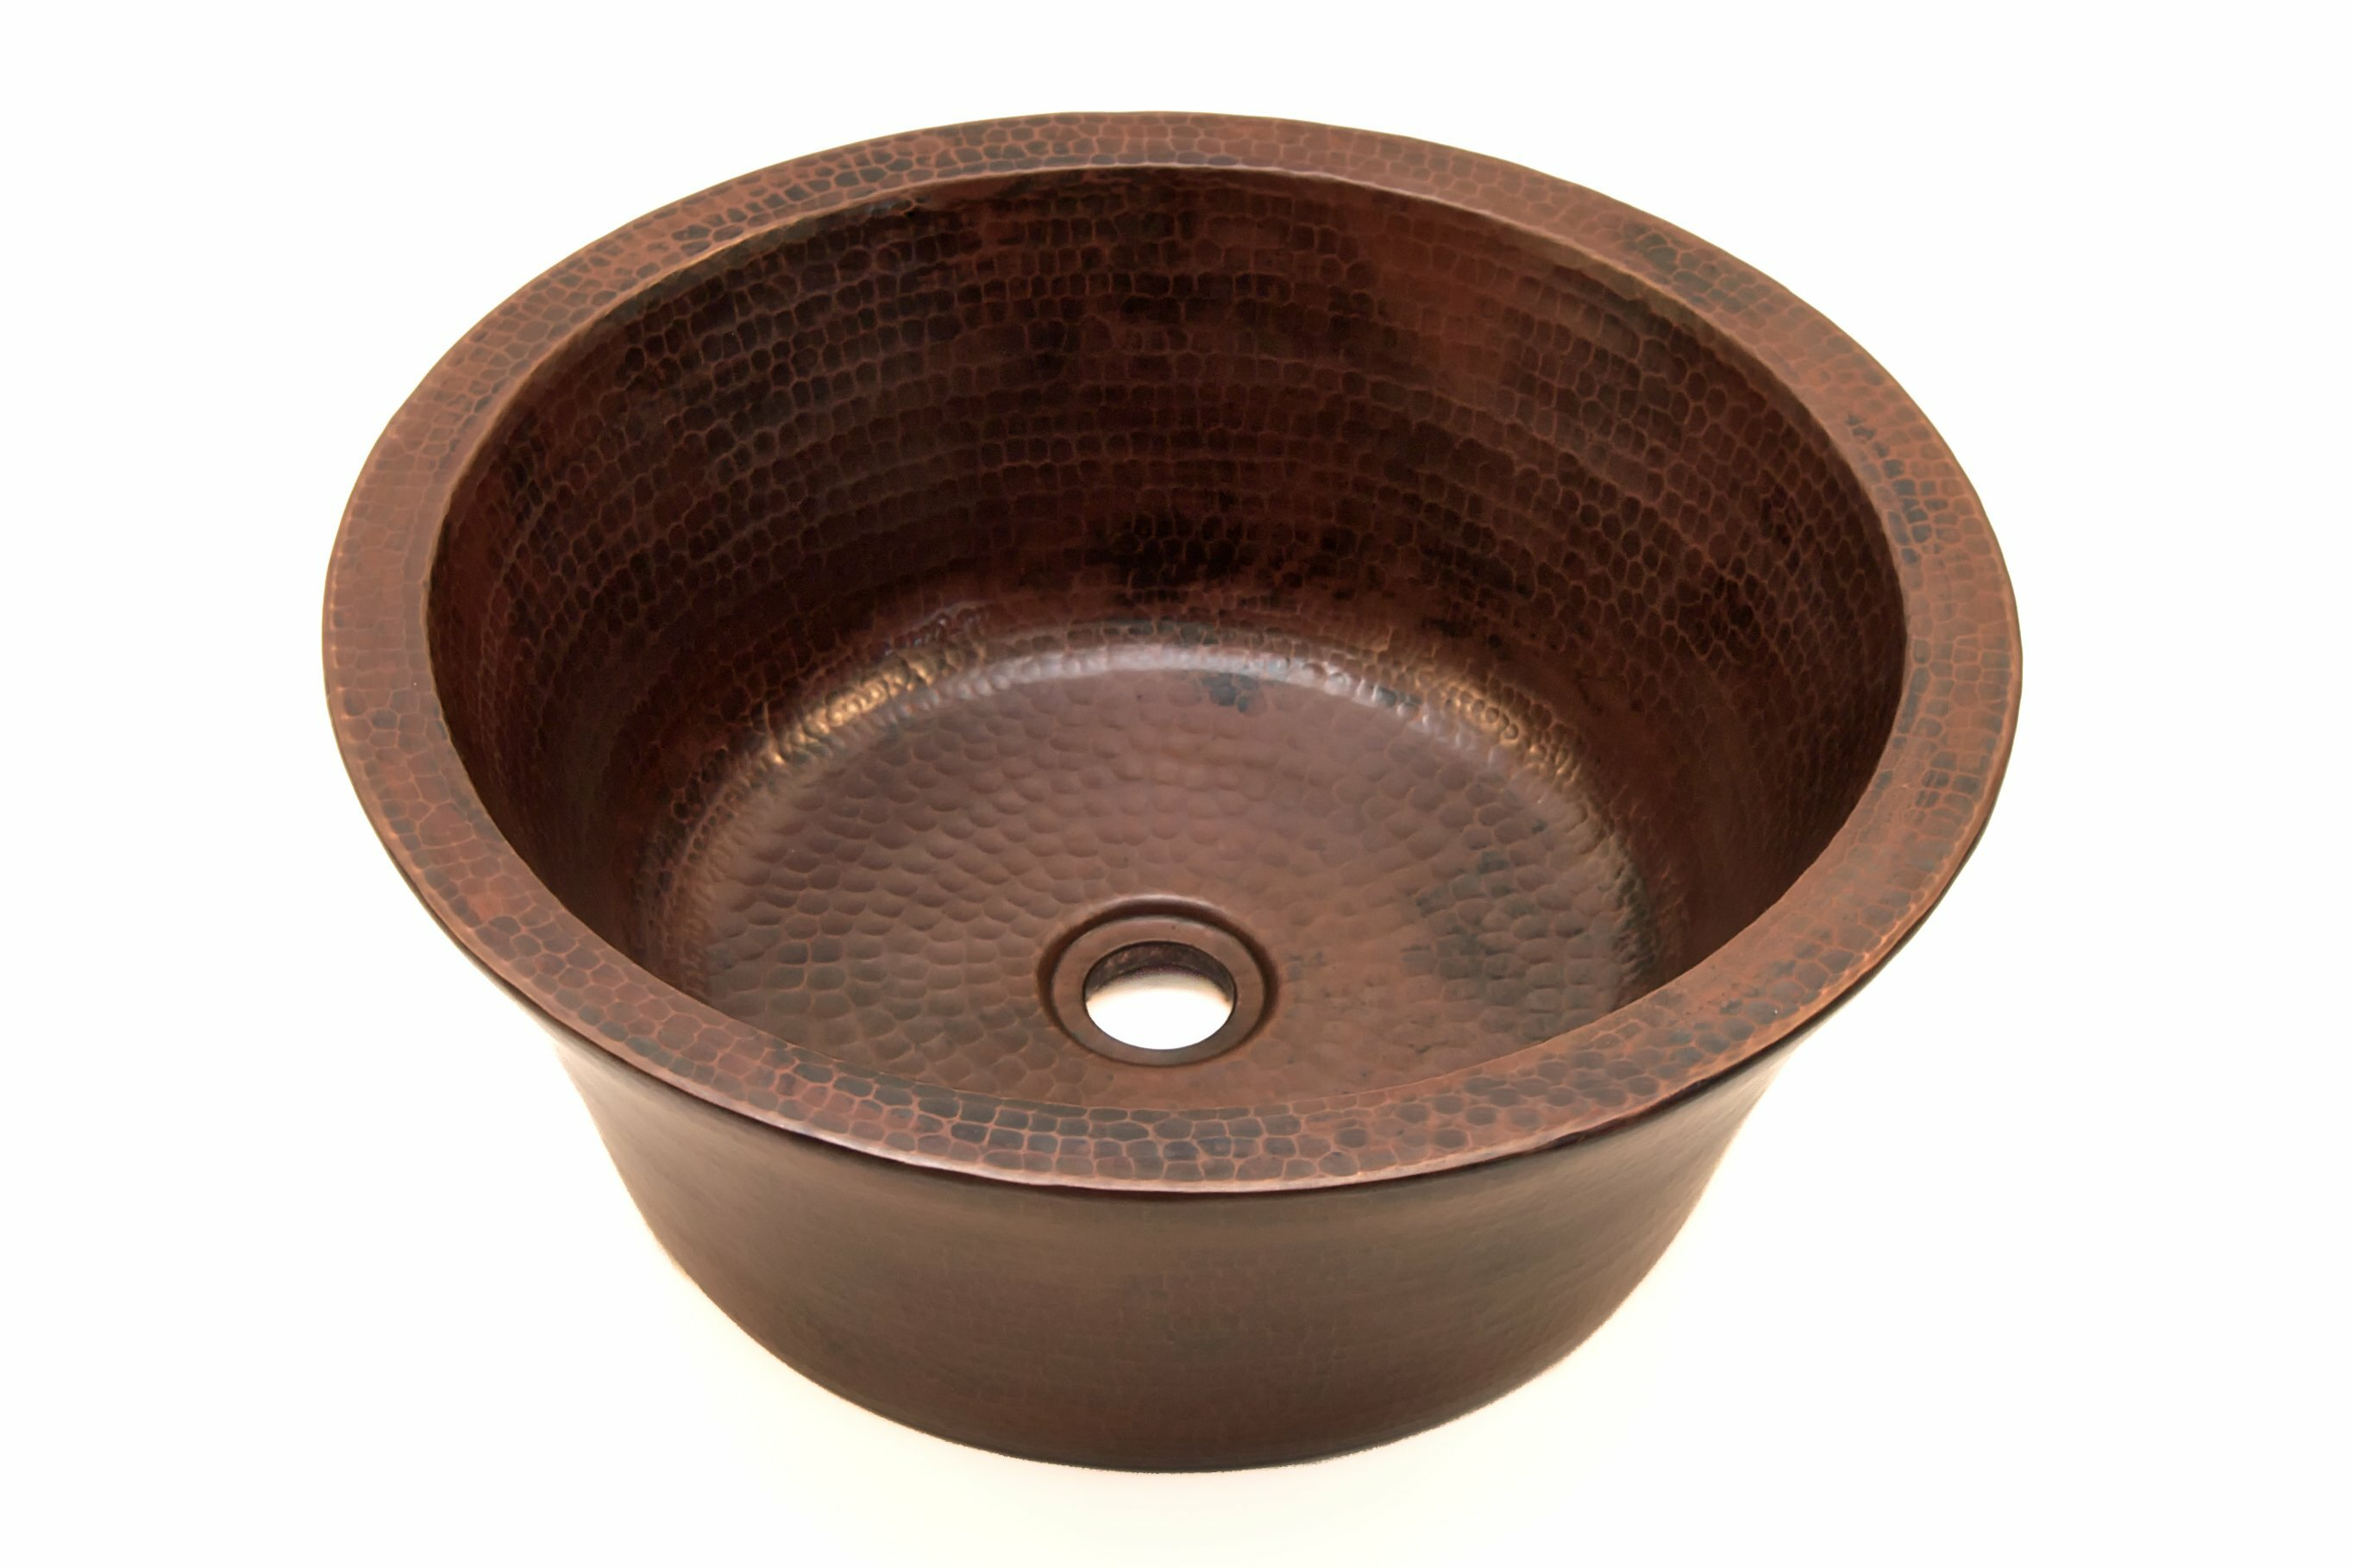 Artesano Design Copper Handmade Circular Vessel Bathroom Sink Wayfair